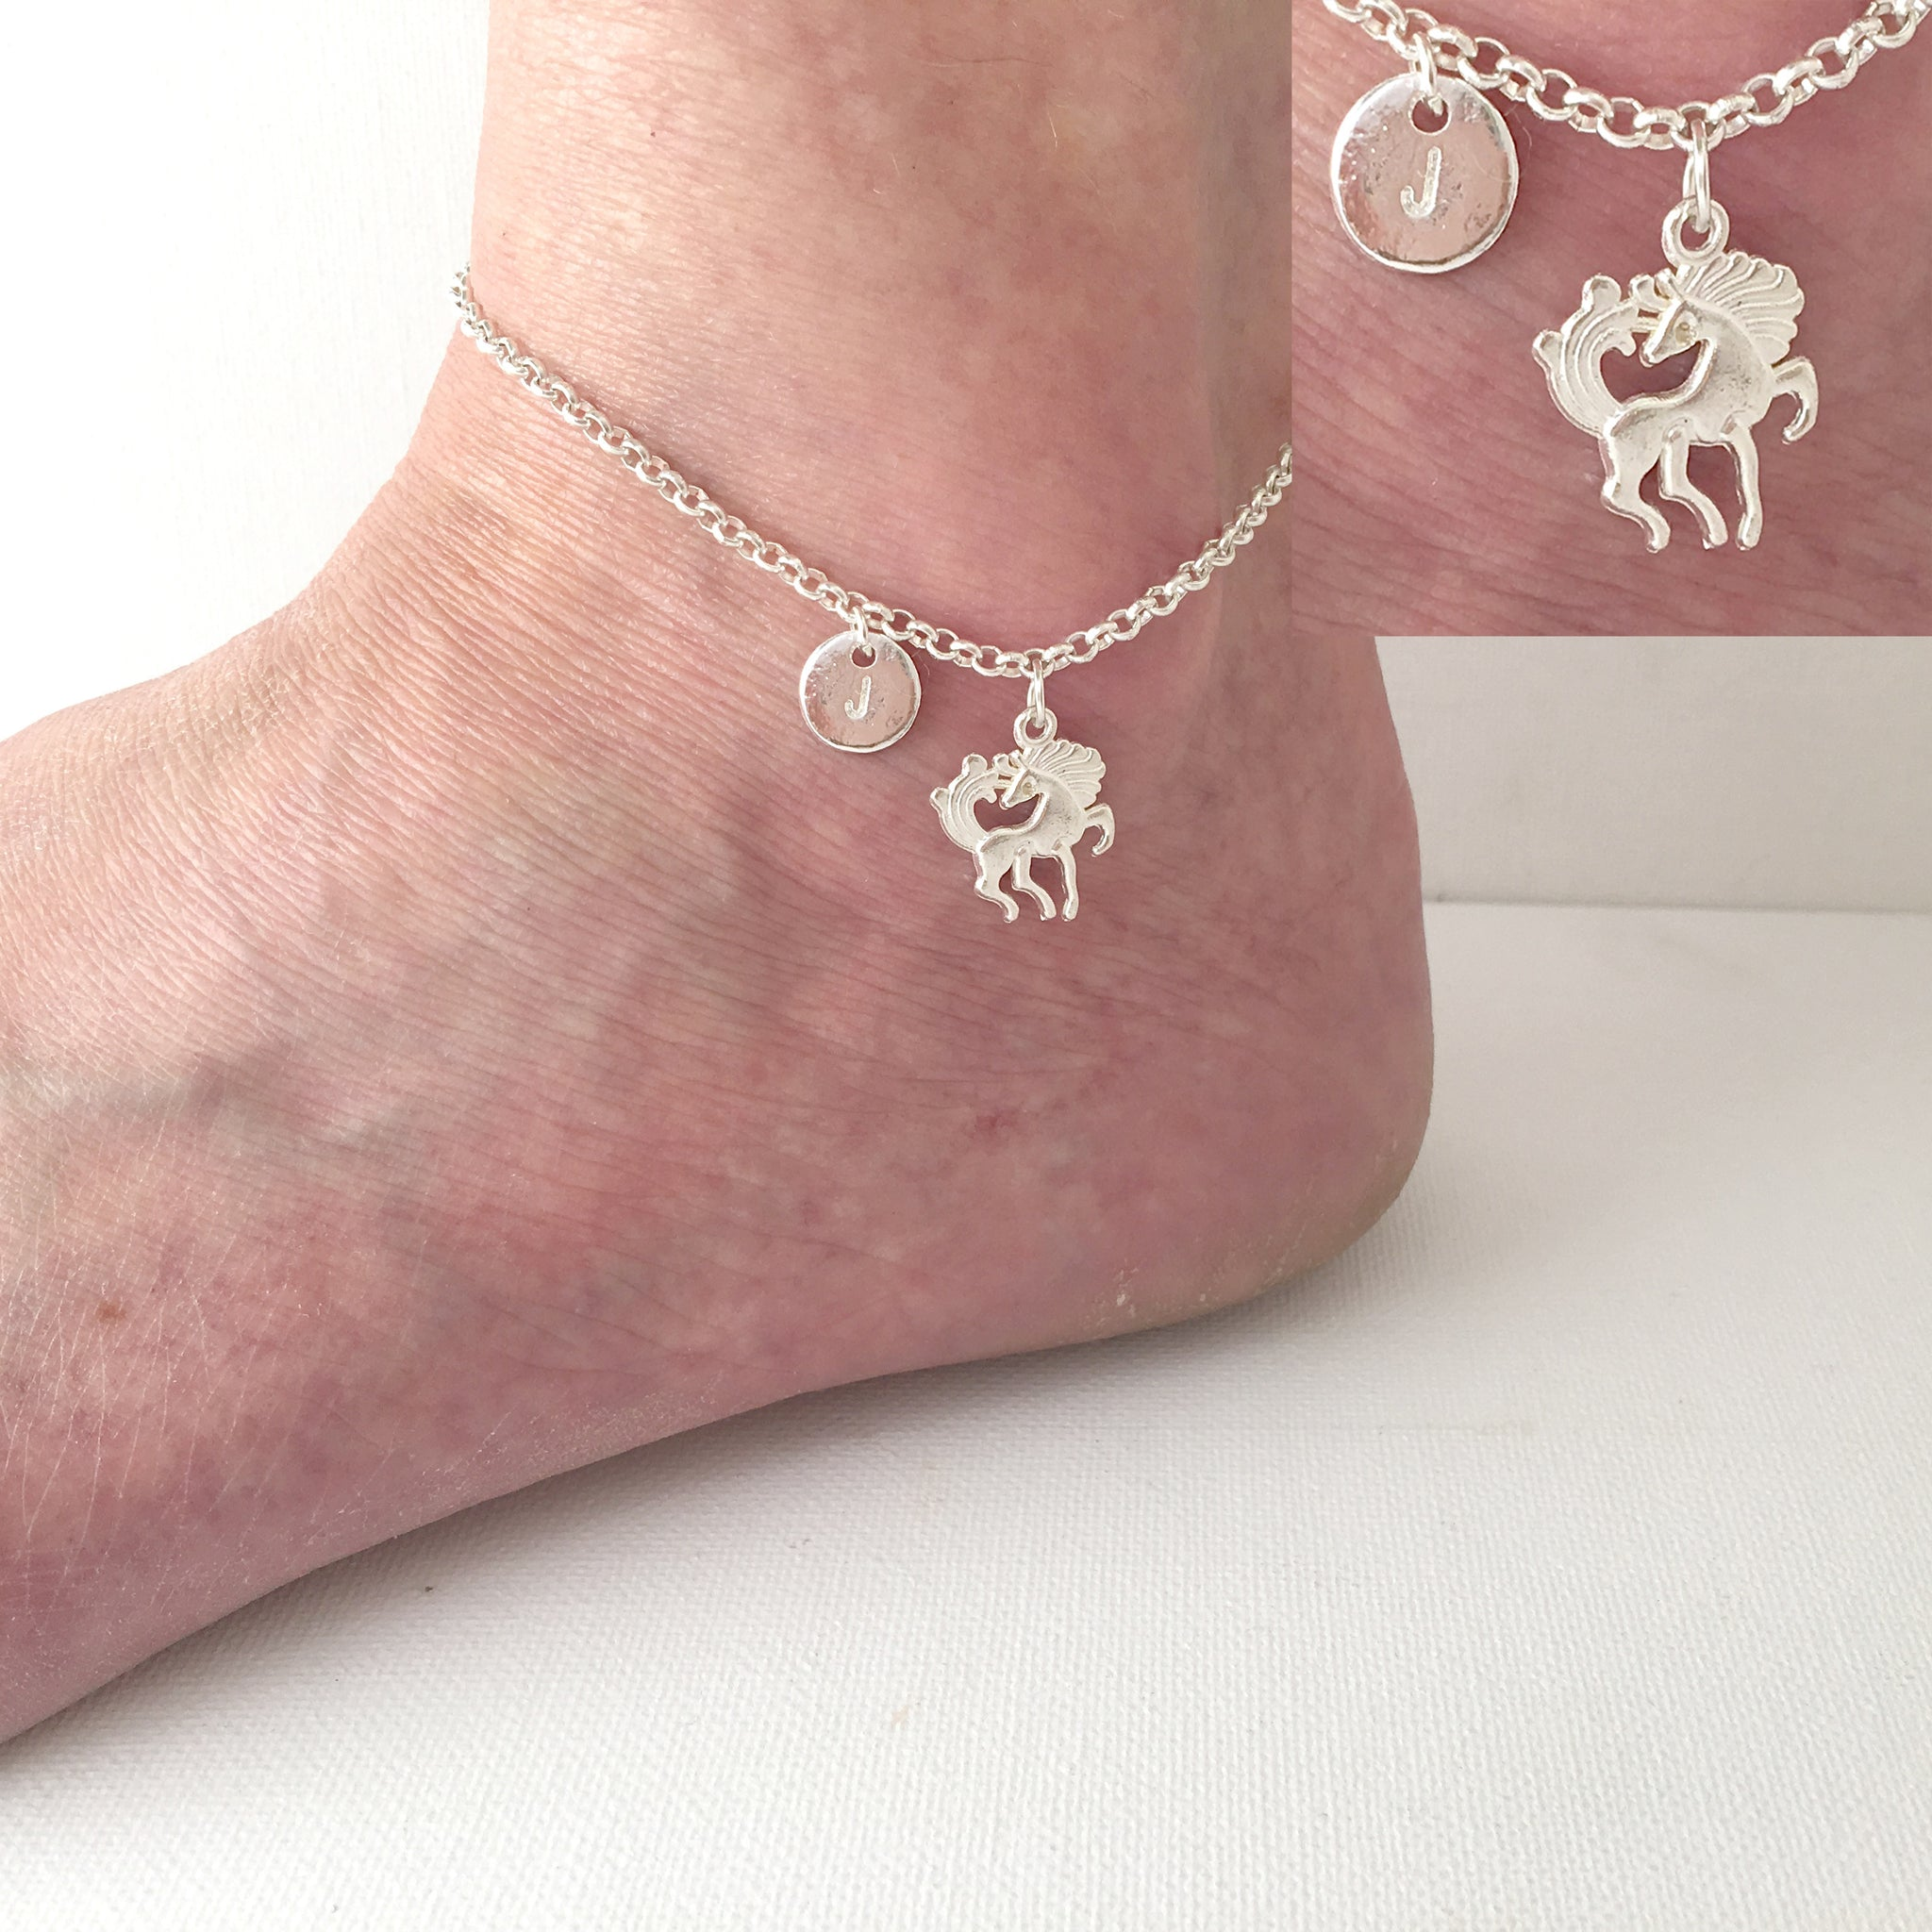 Silver personalised initial unicorn Anklet - Statement Made Jewellery